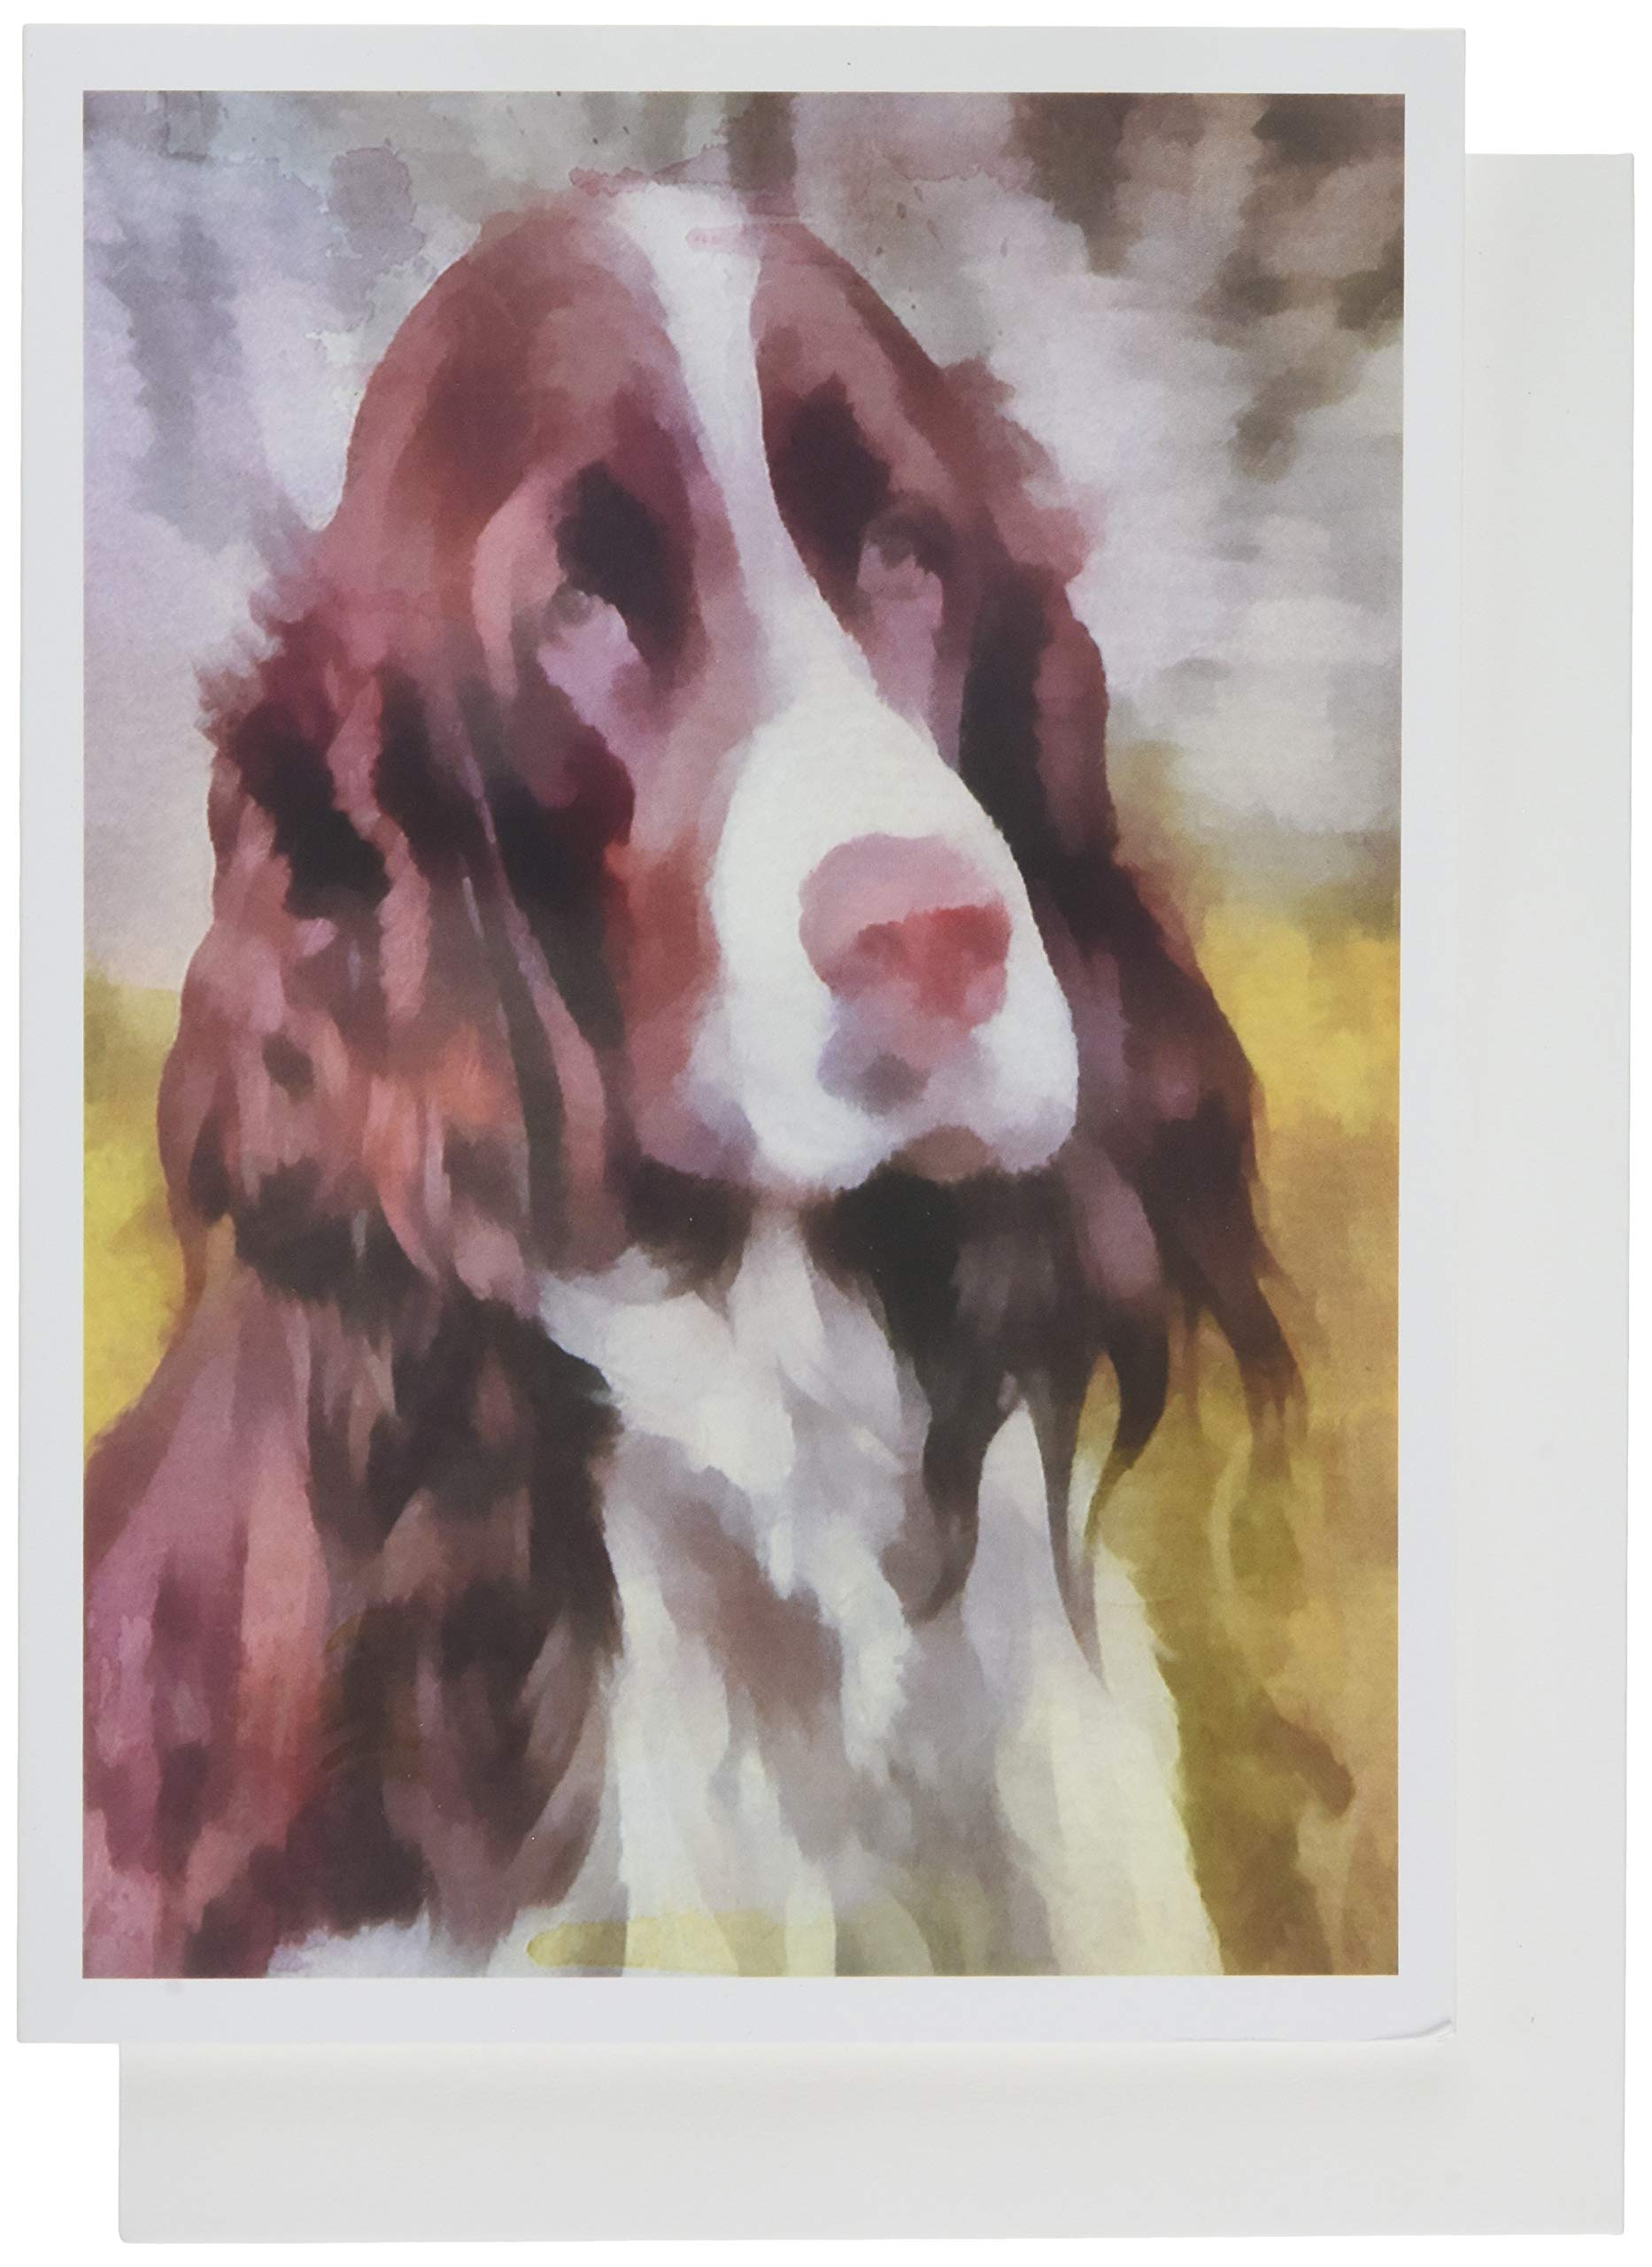 English Springer Spaniel - Dog Blank Note Cards - Set of 6 with Envelopes by